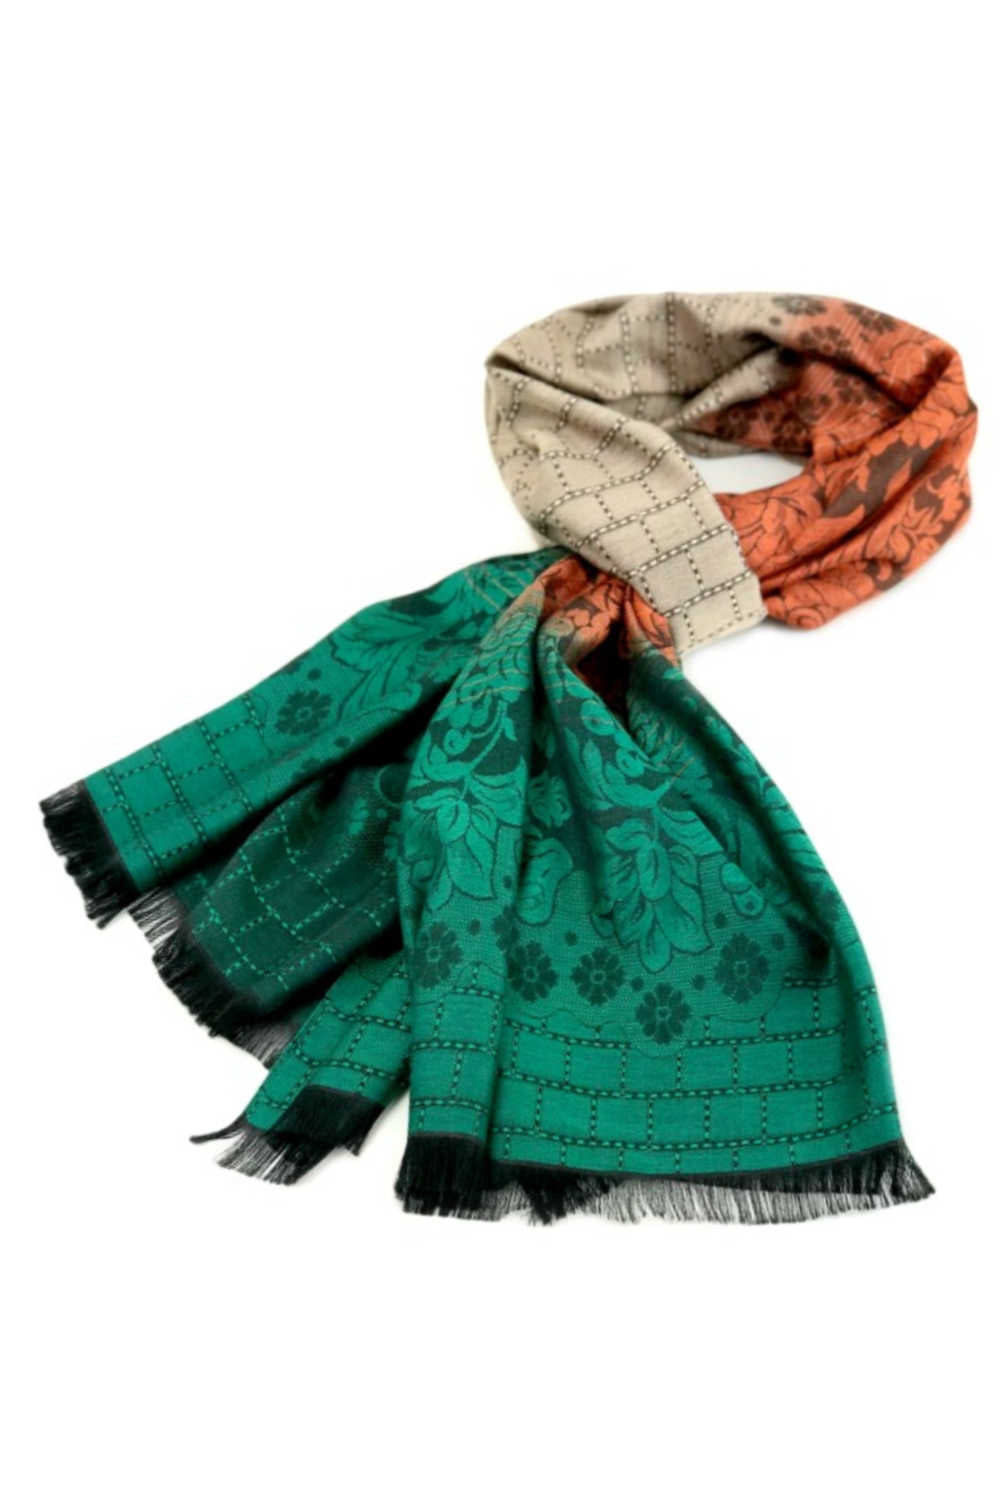 thai-silk-shawl-wrap-floral-emerald-green-copper-orange-latte-brown